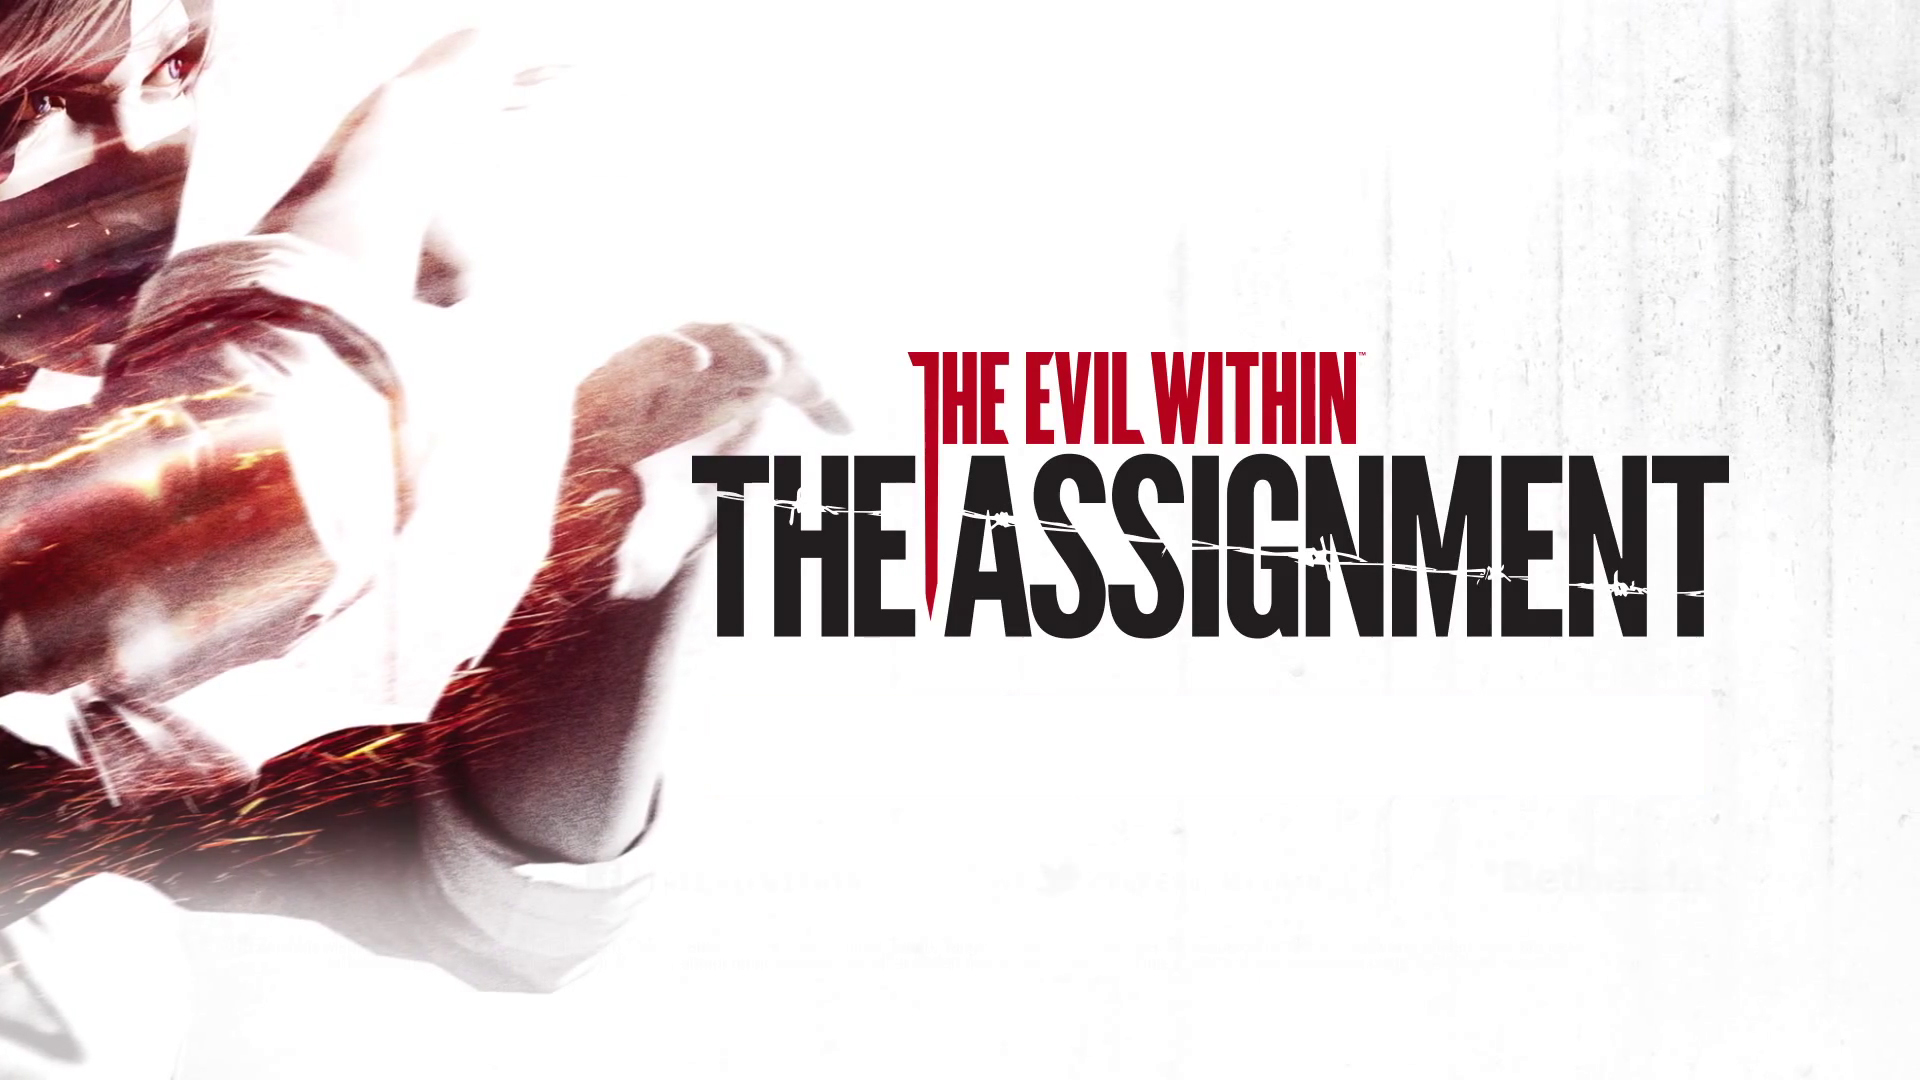 The Evil Within - The Assignement | Ep 3: Scaphandre! - YouTube